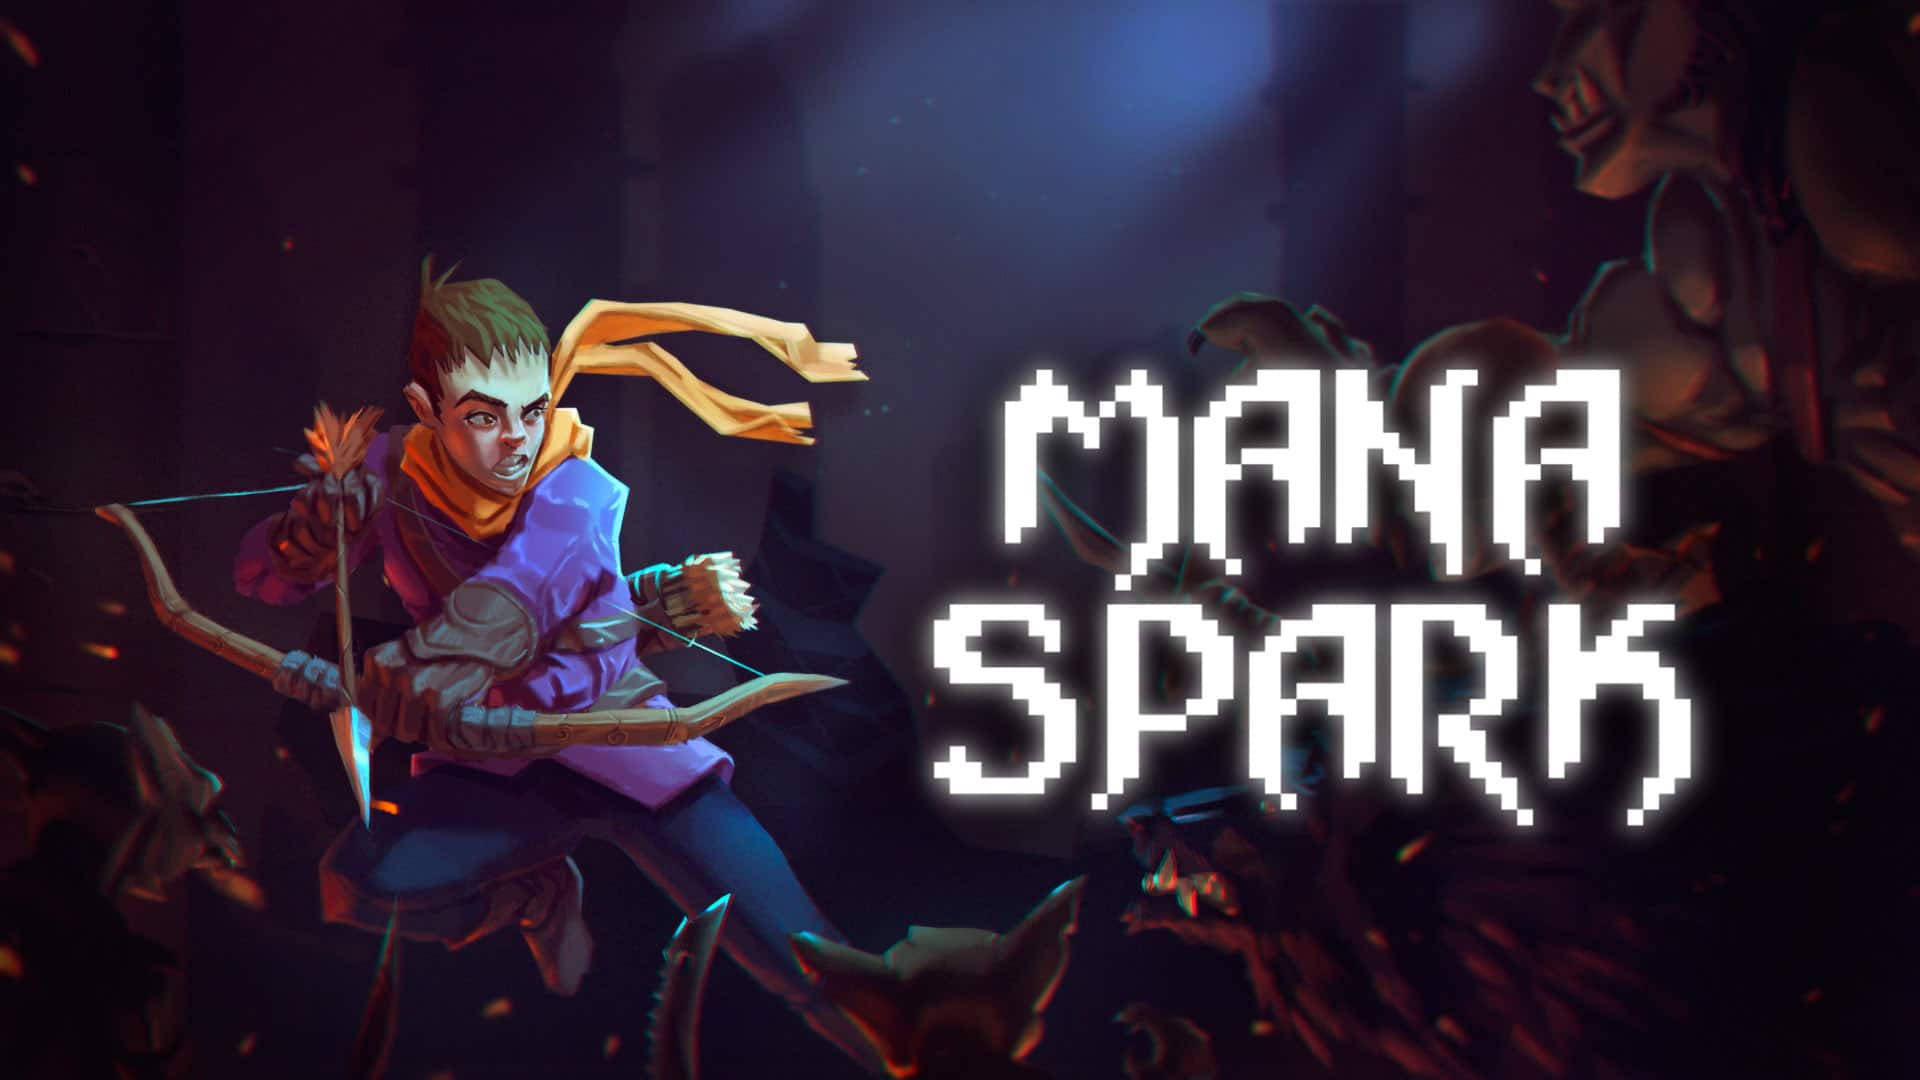 Mana Spark - Nintendo Switch Digital Download - $0.99 @ Nintendo Game Store